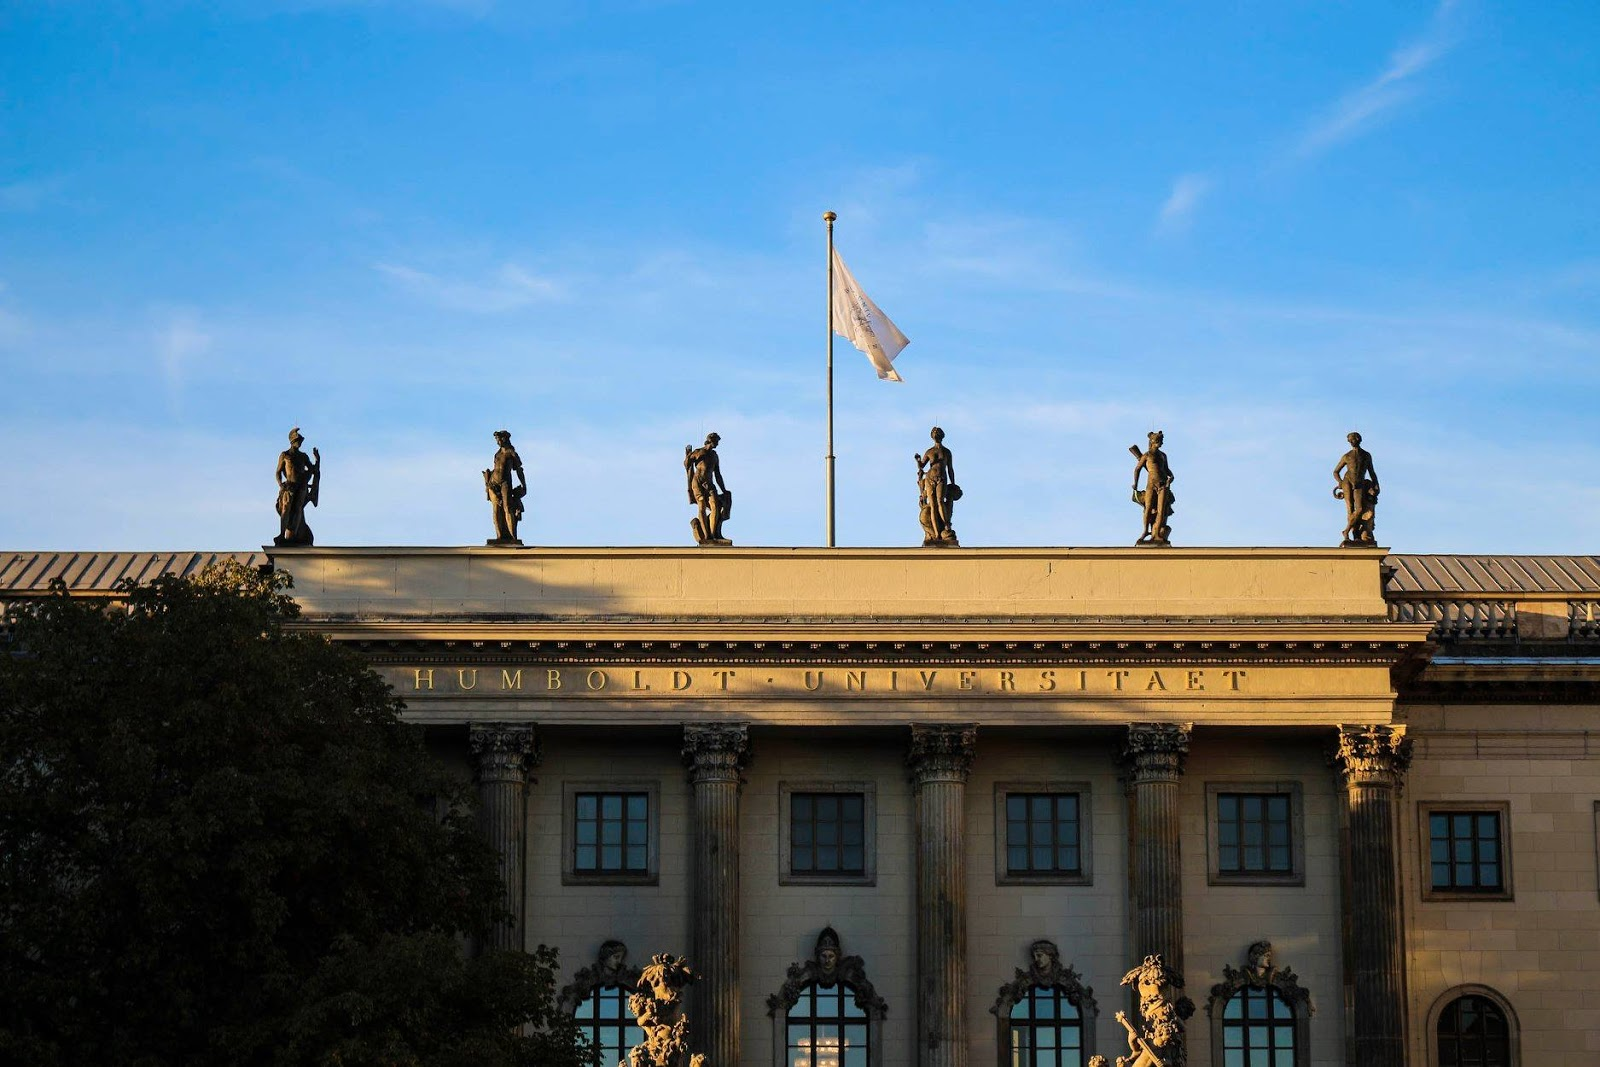 Humboldt University building